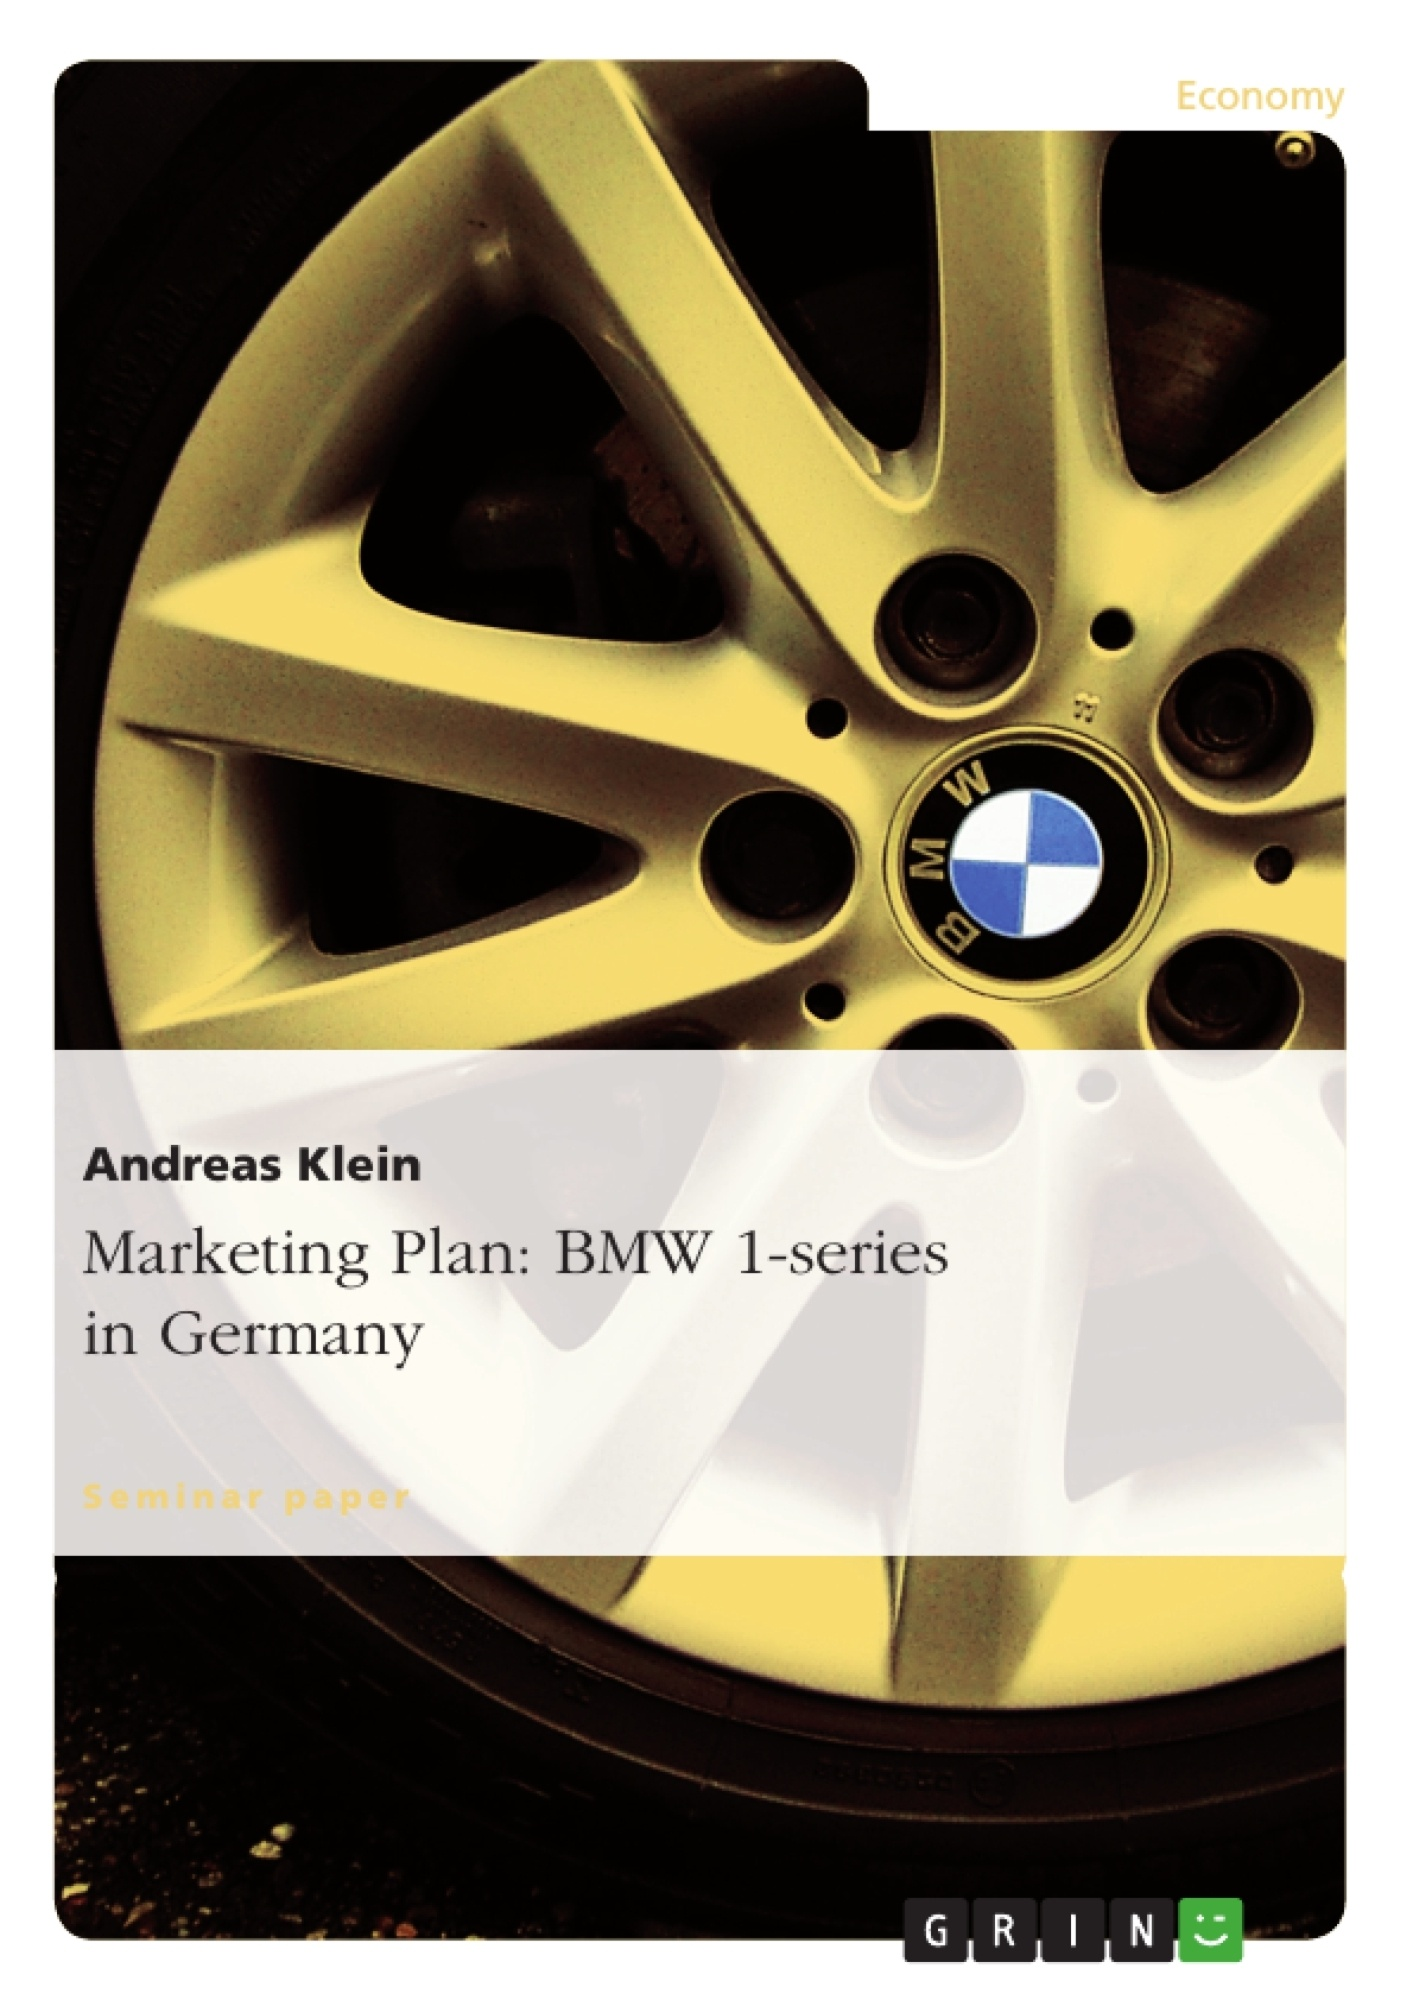 Title: Marketing Plan: BMW 1-series in Germany